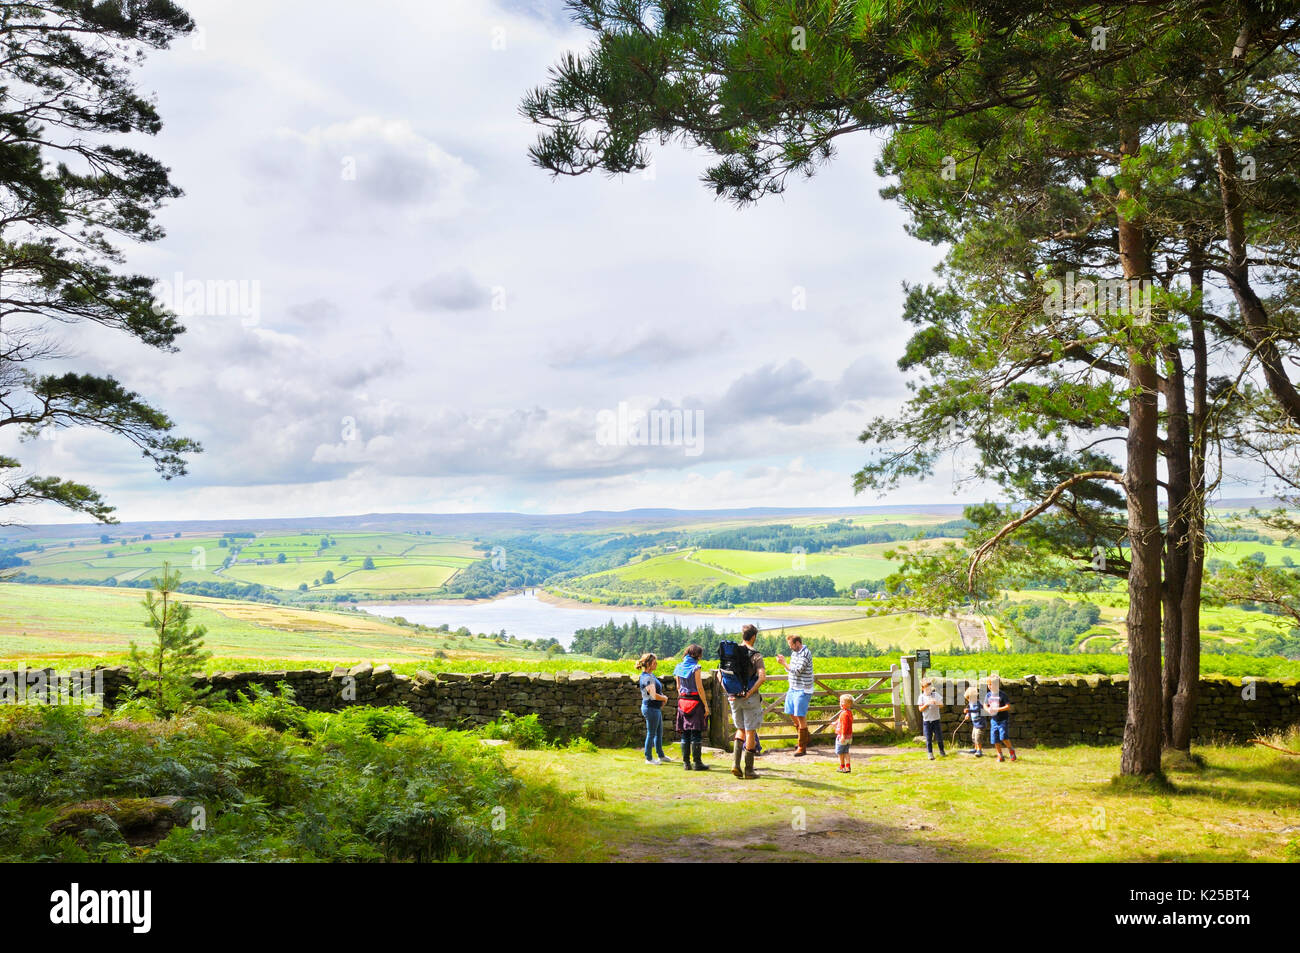 Families on a woodland walk pause for a break to enjoy the views of the Yorkshire countryside around Leighton Reservoir, Ilton, North Yorkshire, UK - Stock Image